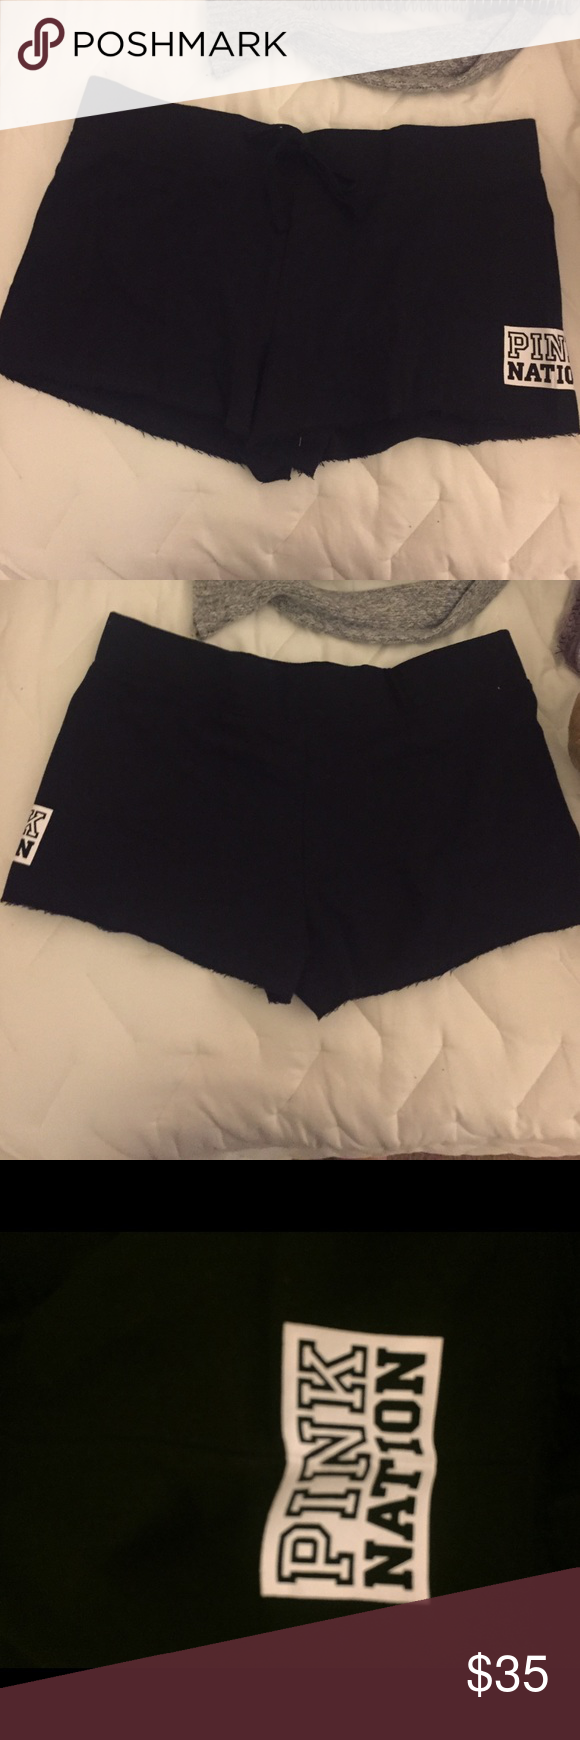 Pink Victoria's Secret black shorts New never worn. Open to offers not looking to trade. Size M color black. On the side it say Pink Nation. PINK Victoria's Secret Shorts